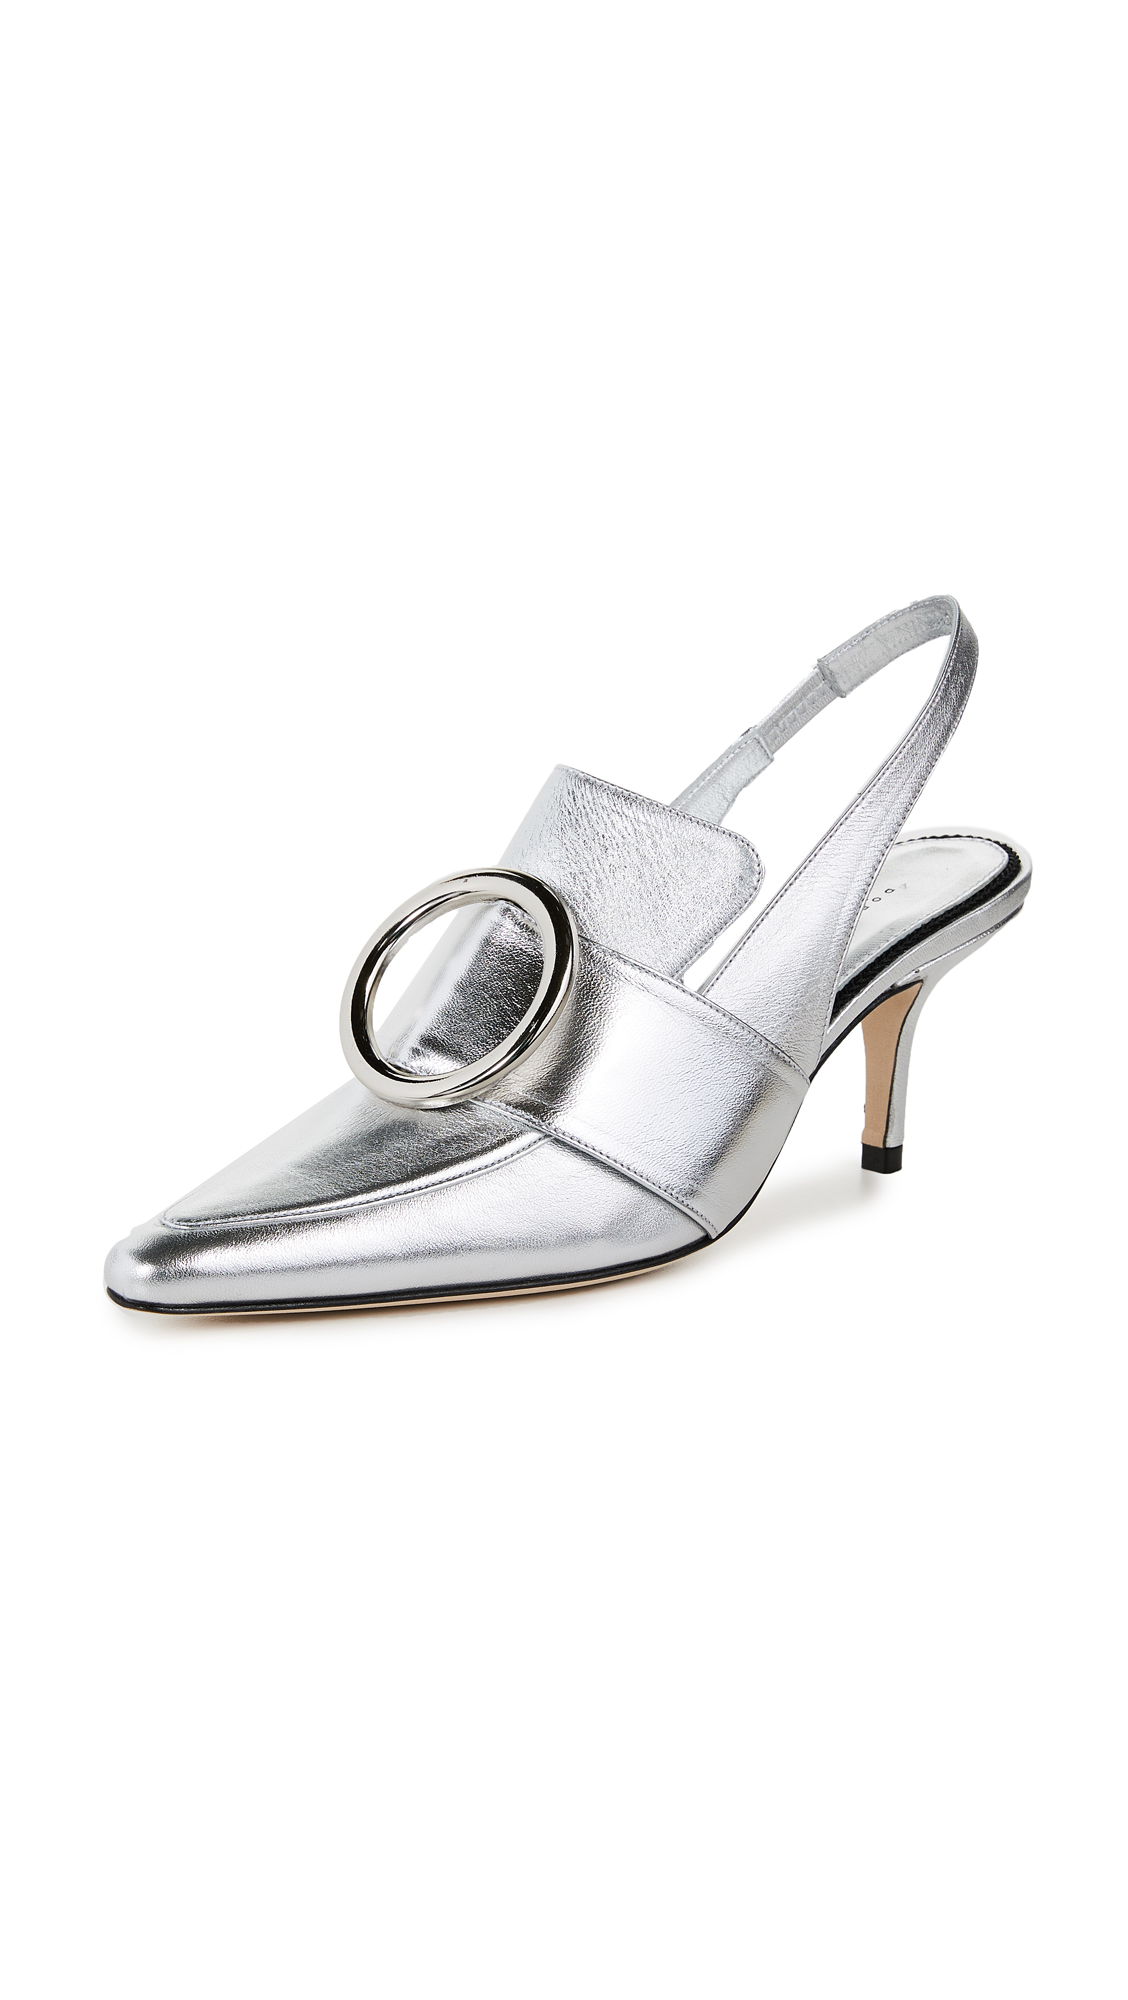 Dorateymur Eagle Slingback Pumps - Silver